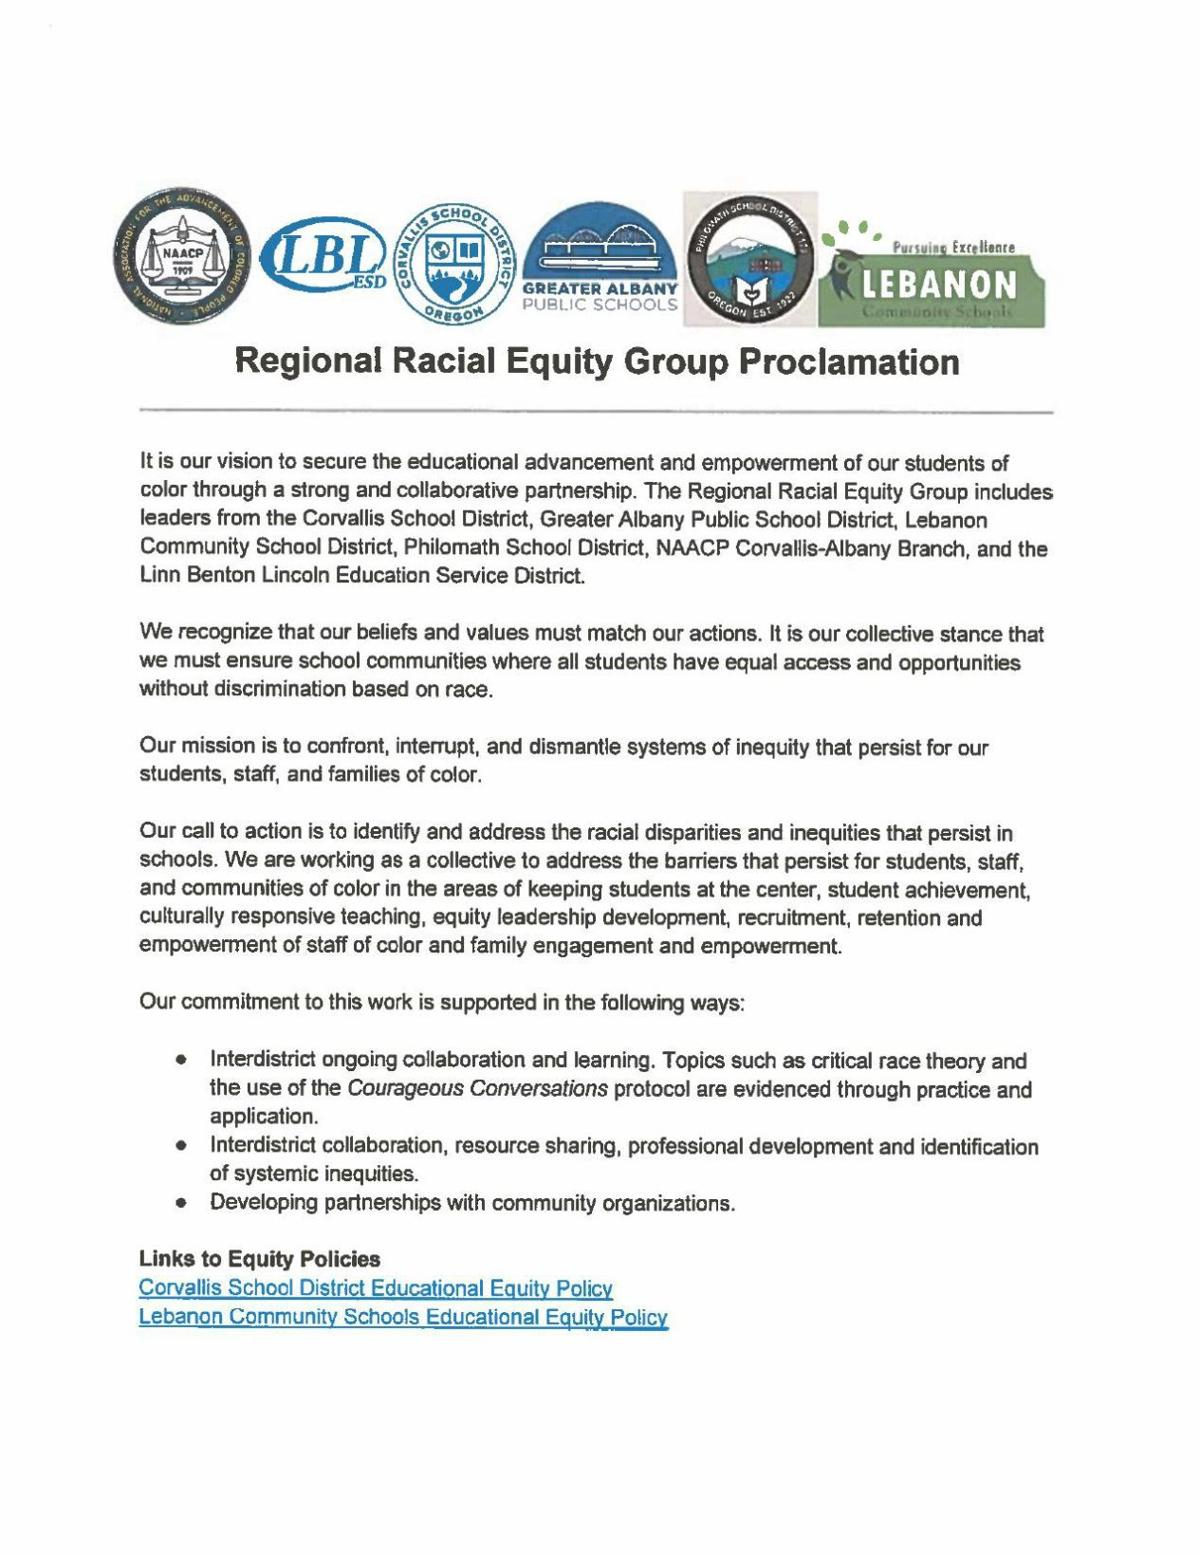 Signed Regional Racial Equity Group Proclamation.pdf